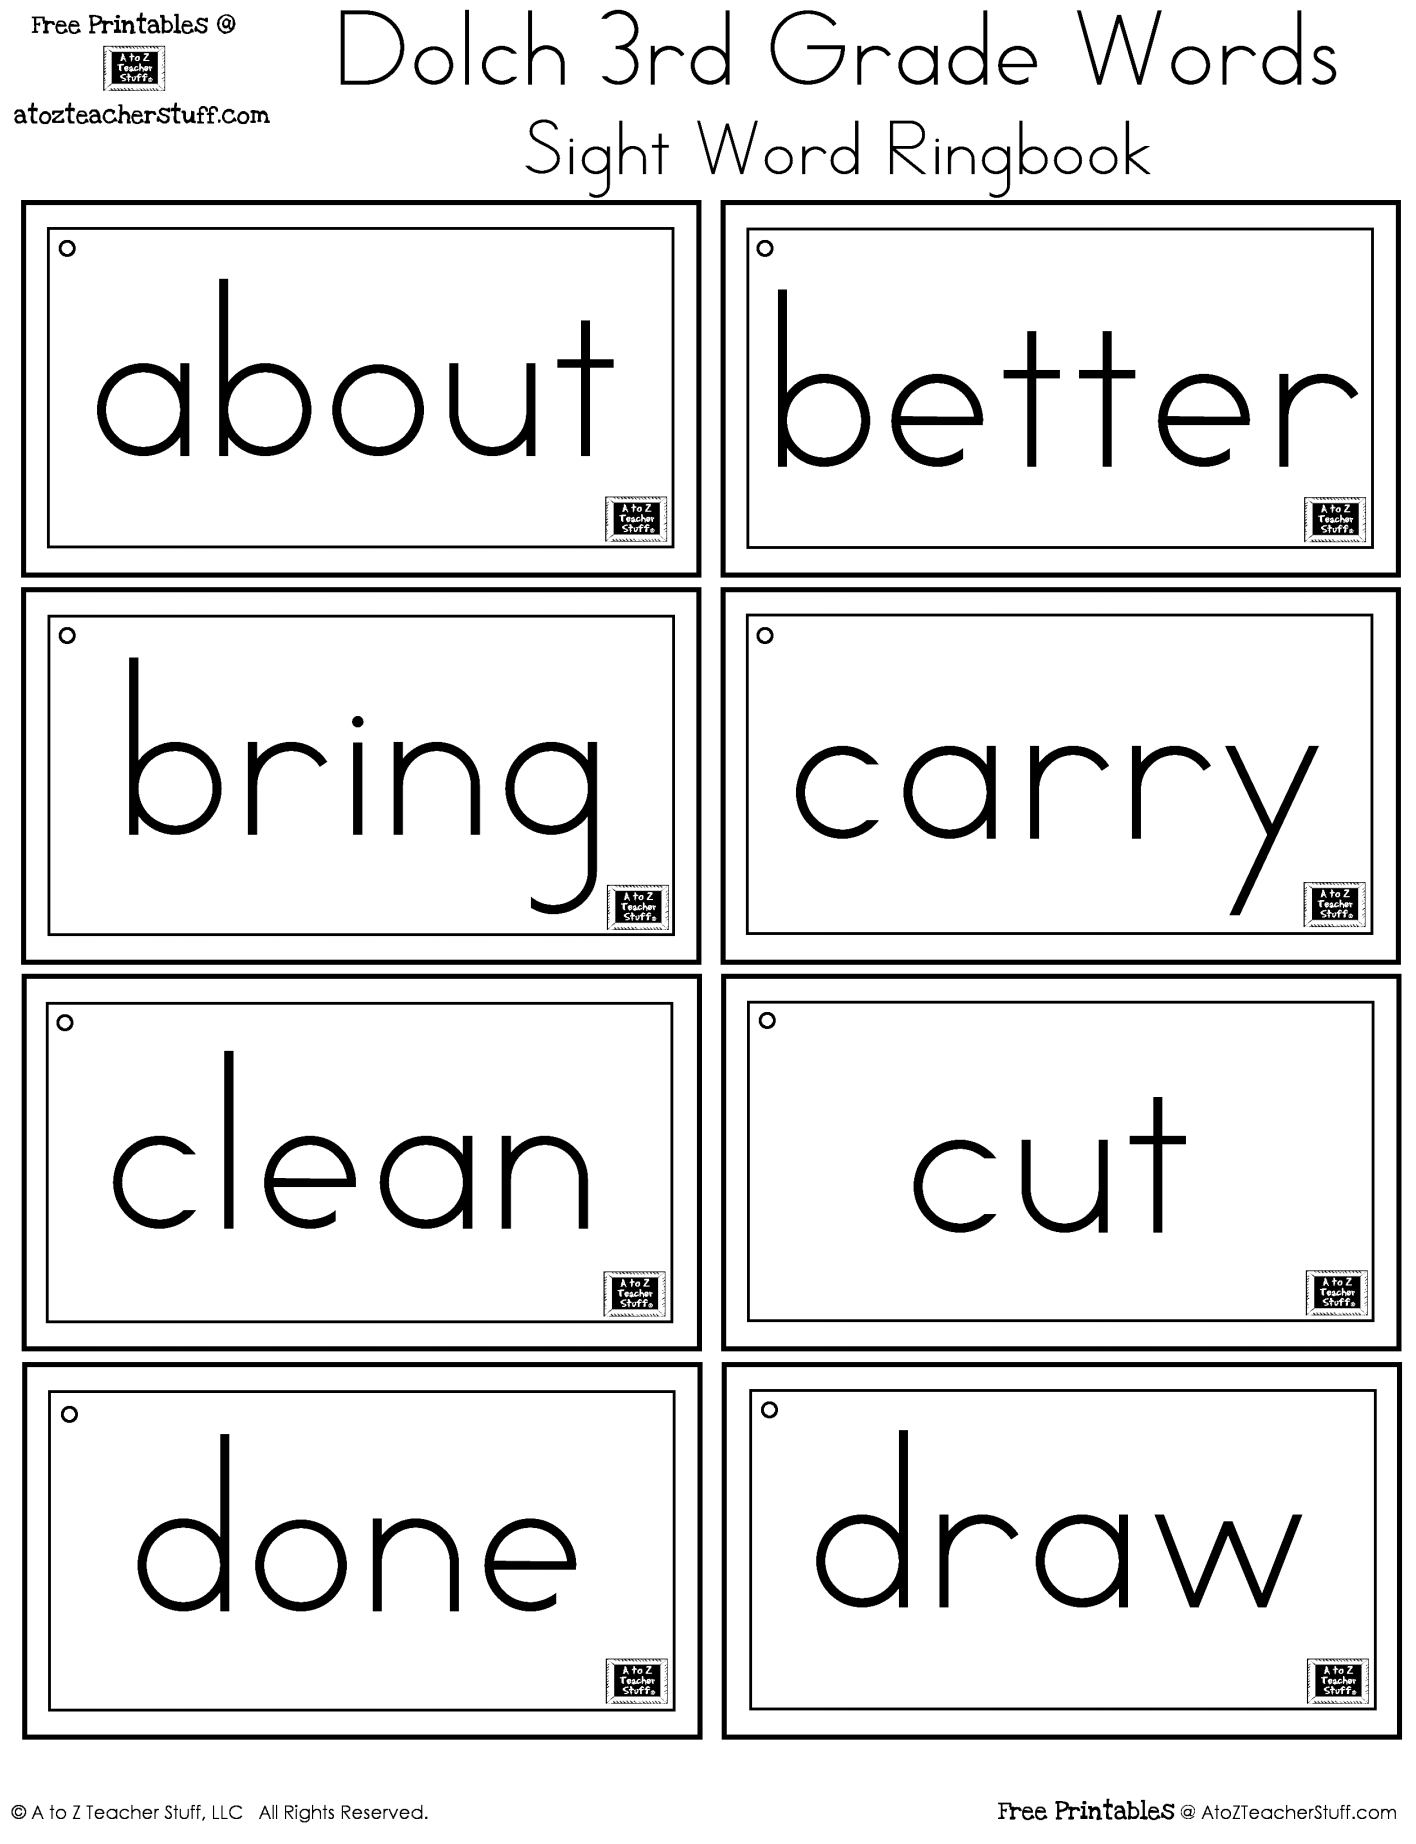 3rd Grade Dolch Words Sight Word Ringbook